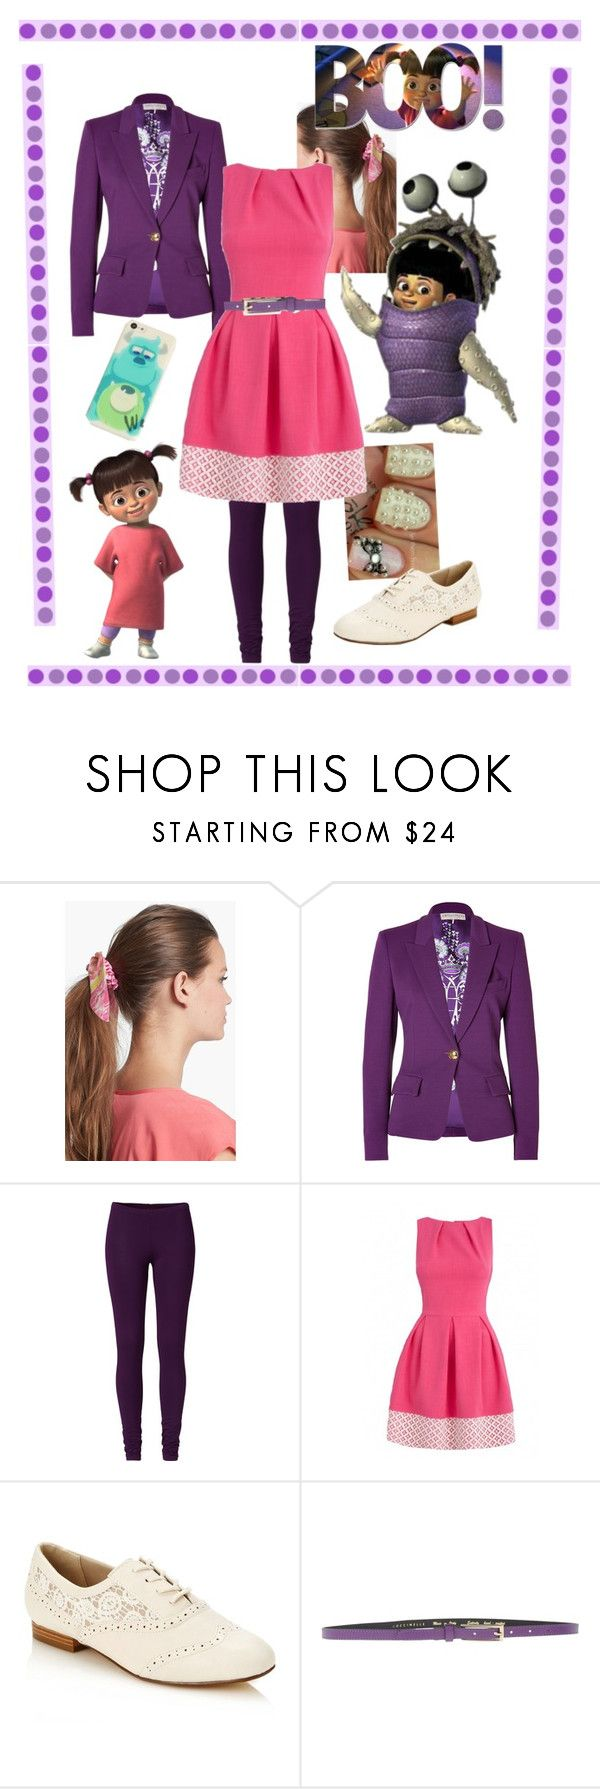 """Boo!"" by faleur102 ❤ liked on Polyvore featuring L. Erickson, Disney, Emilio Pucci, Rocha.John Rocha, Coccinelle, disney, Boo and monstersinc"